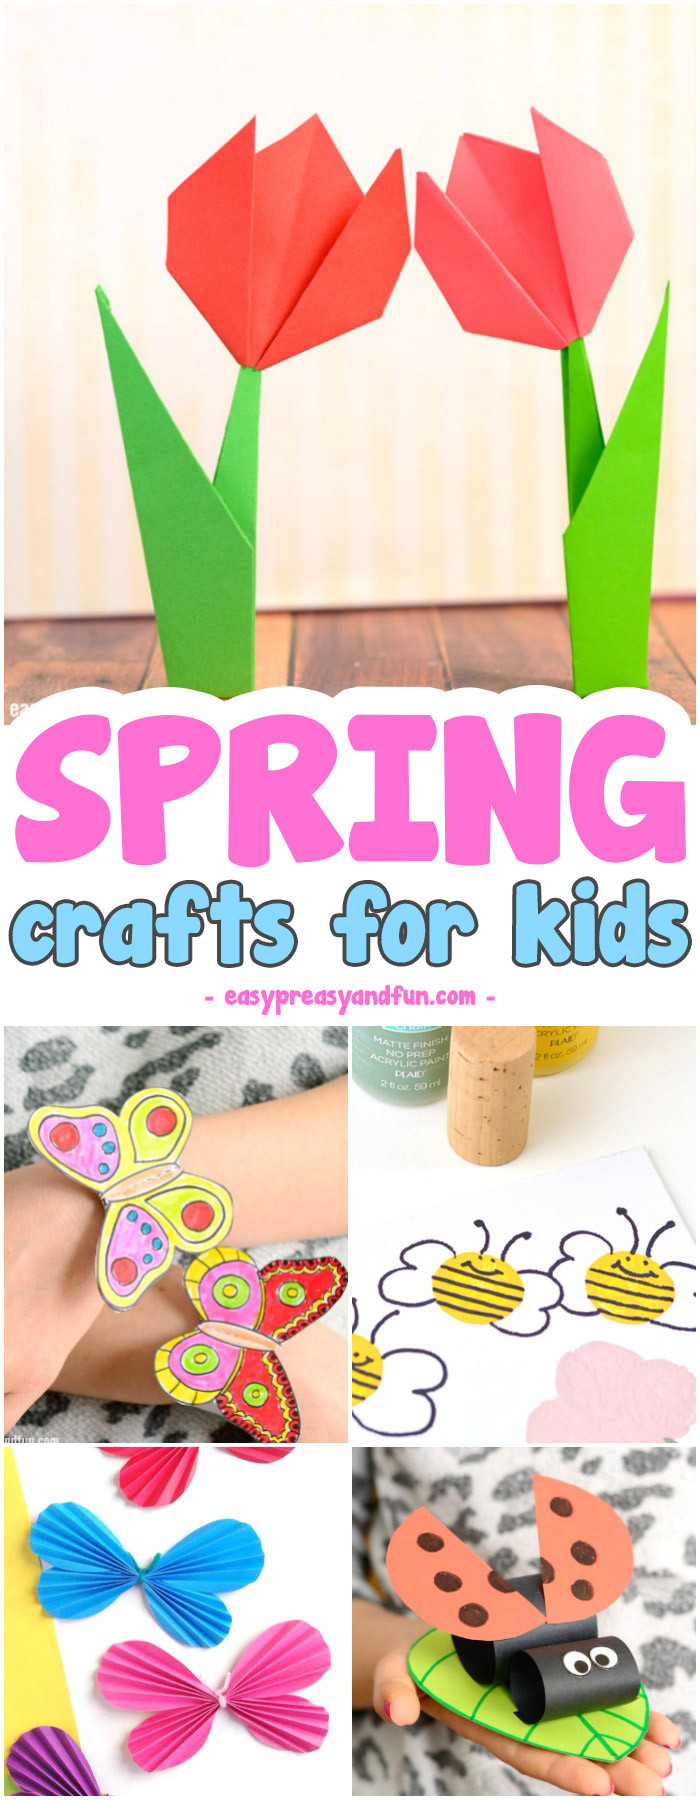 Best ideas about Art Craft For Kids . Save or Pin Spring Crafts for Kids Art and Craft Project Ideas for Now.